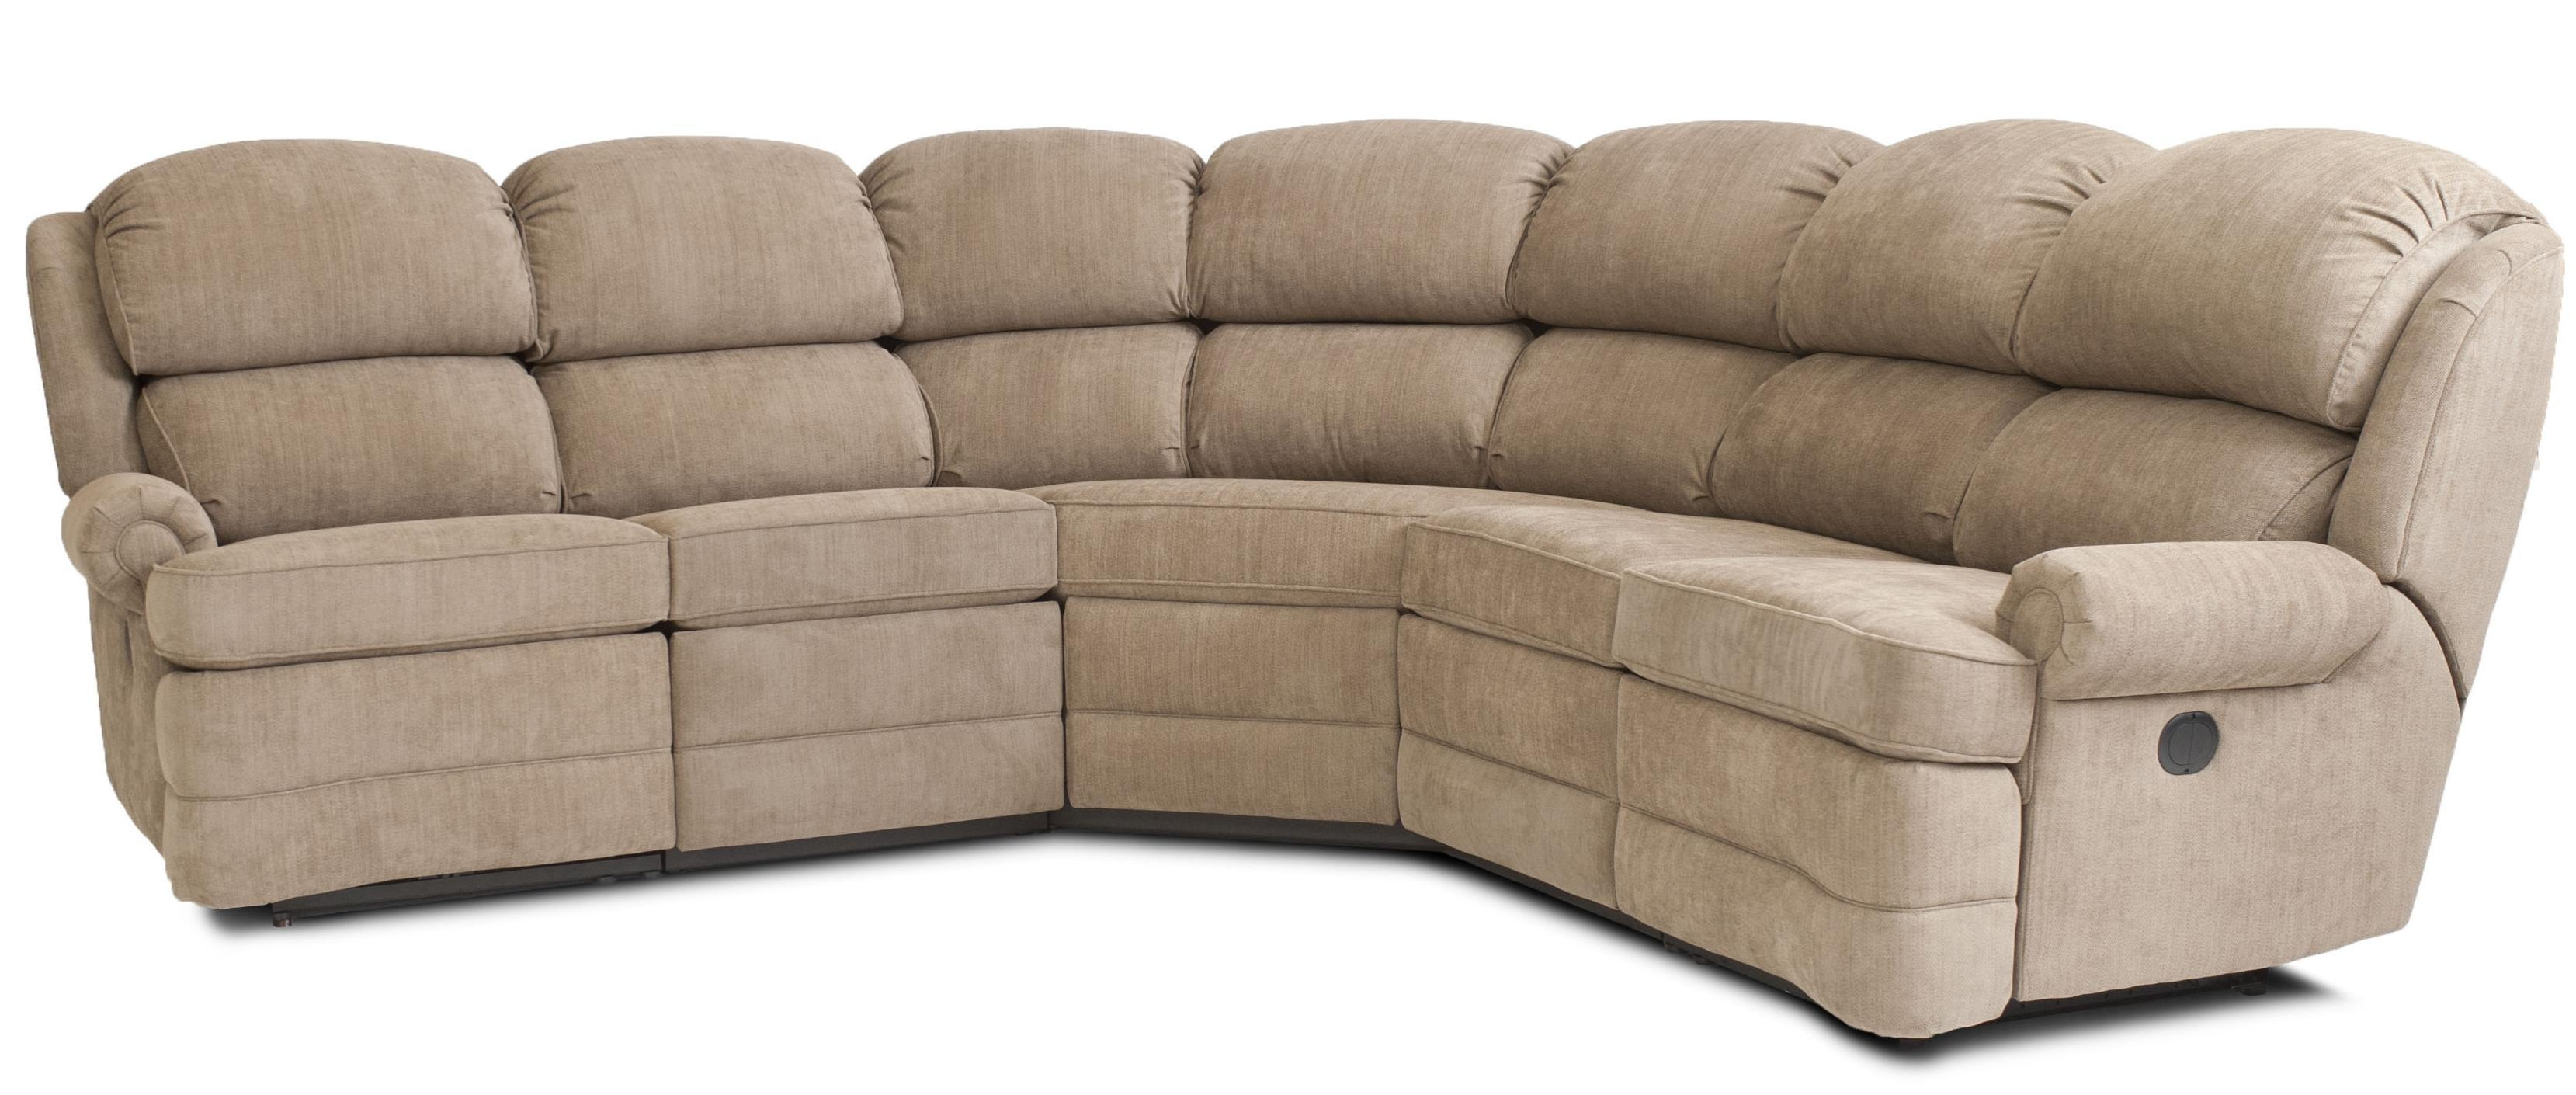 Furniture: Incredible Style Sectional Reclining Sofas For Your Pertaining To Individual Piece Sectional Sofas (Image 8 of 20)